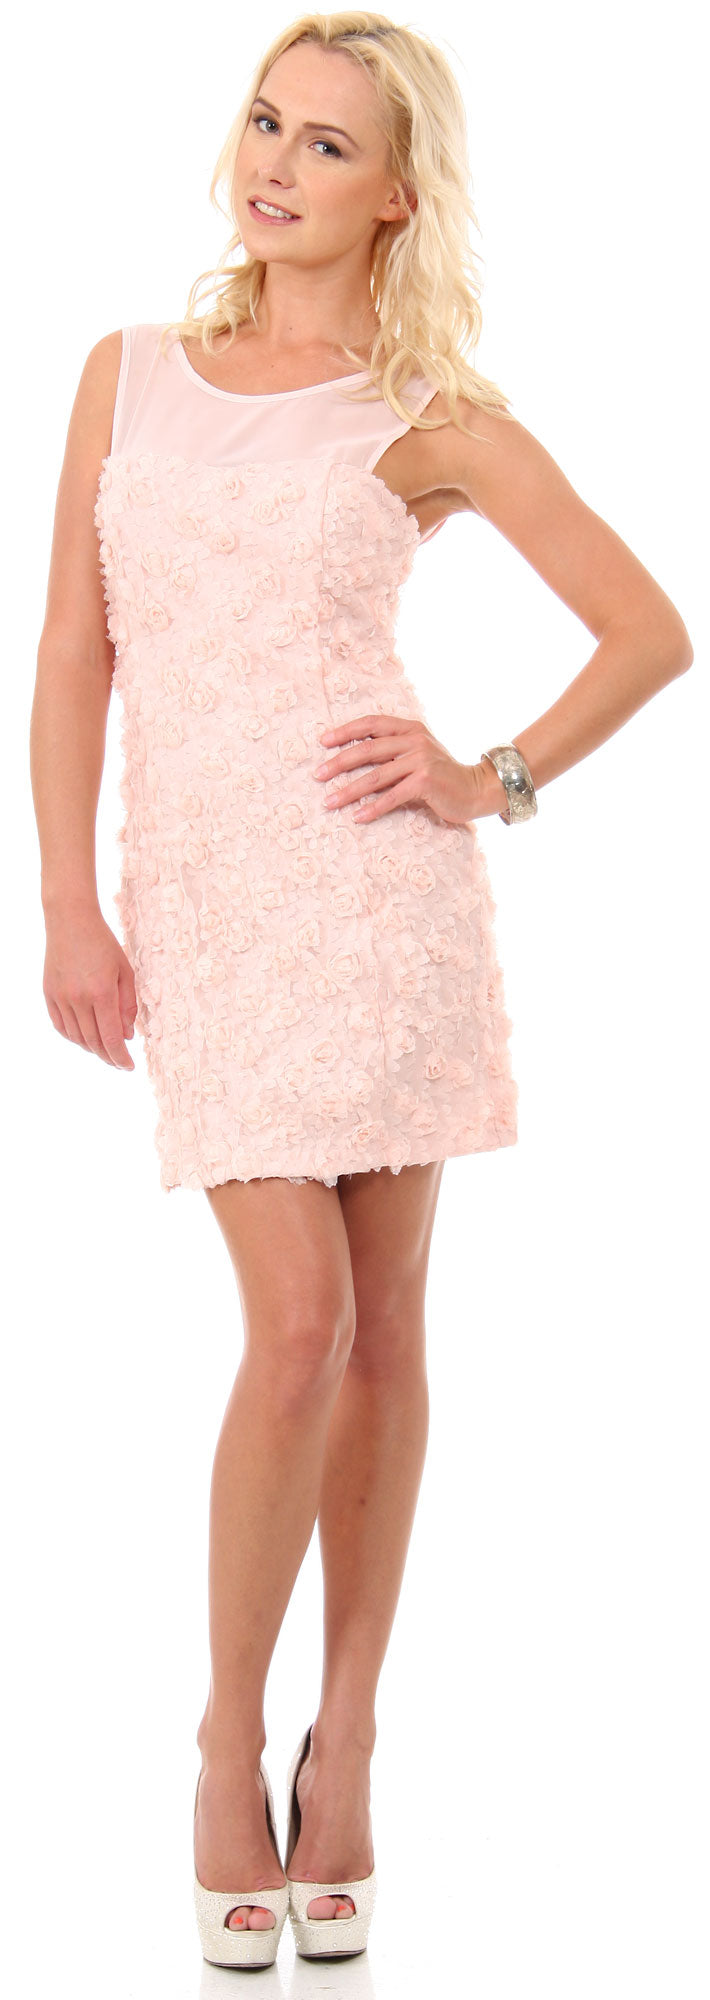 Main image of Rosette Short Party Dress With Sheer Neckline